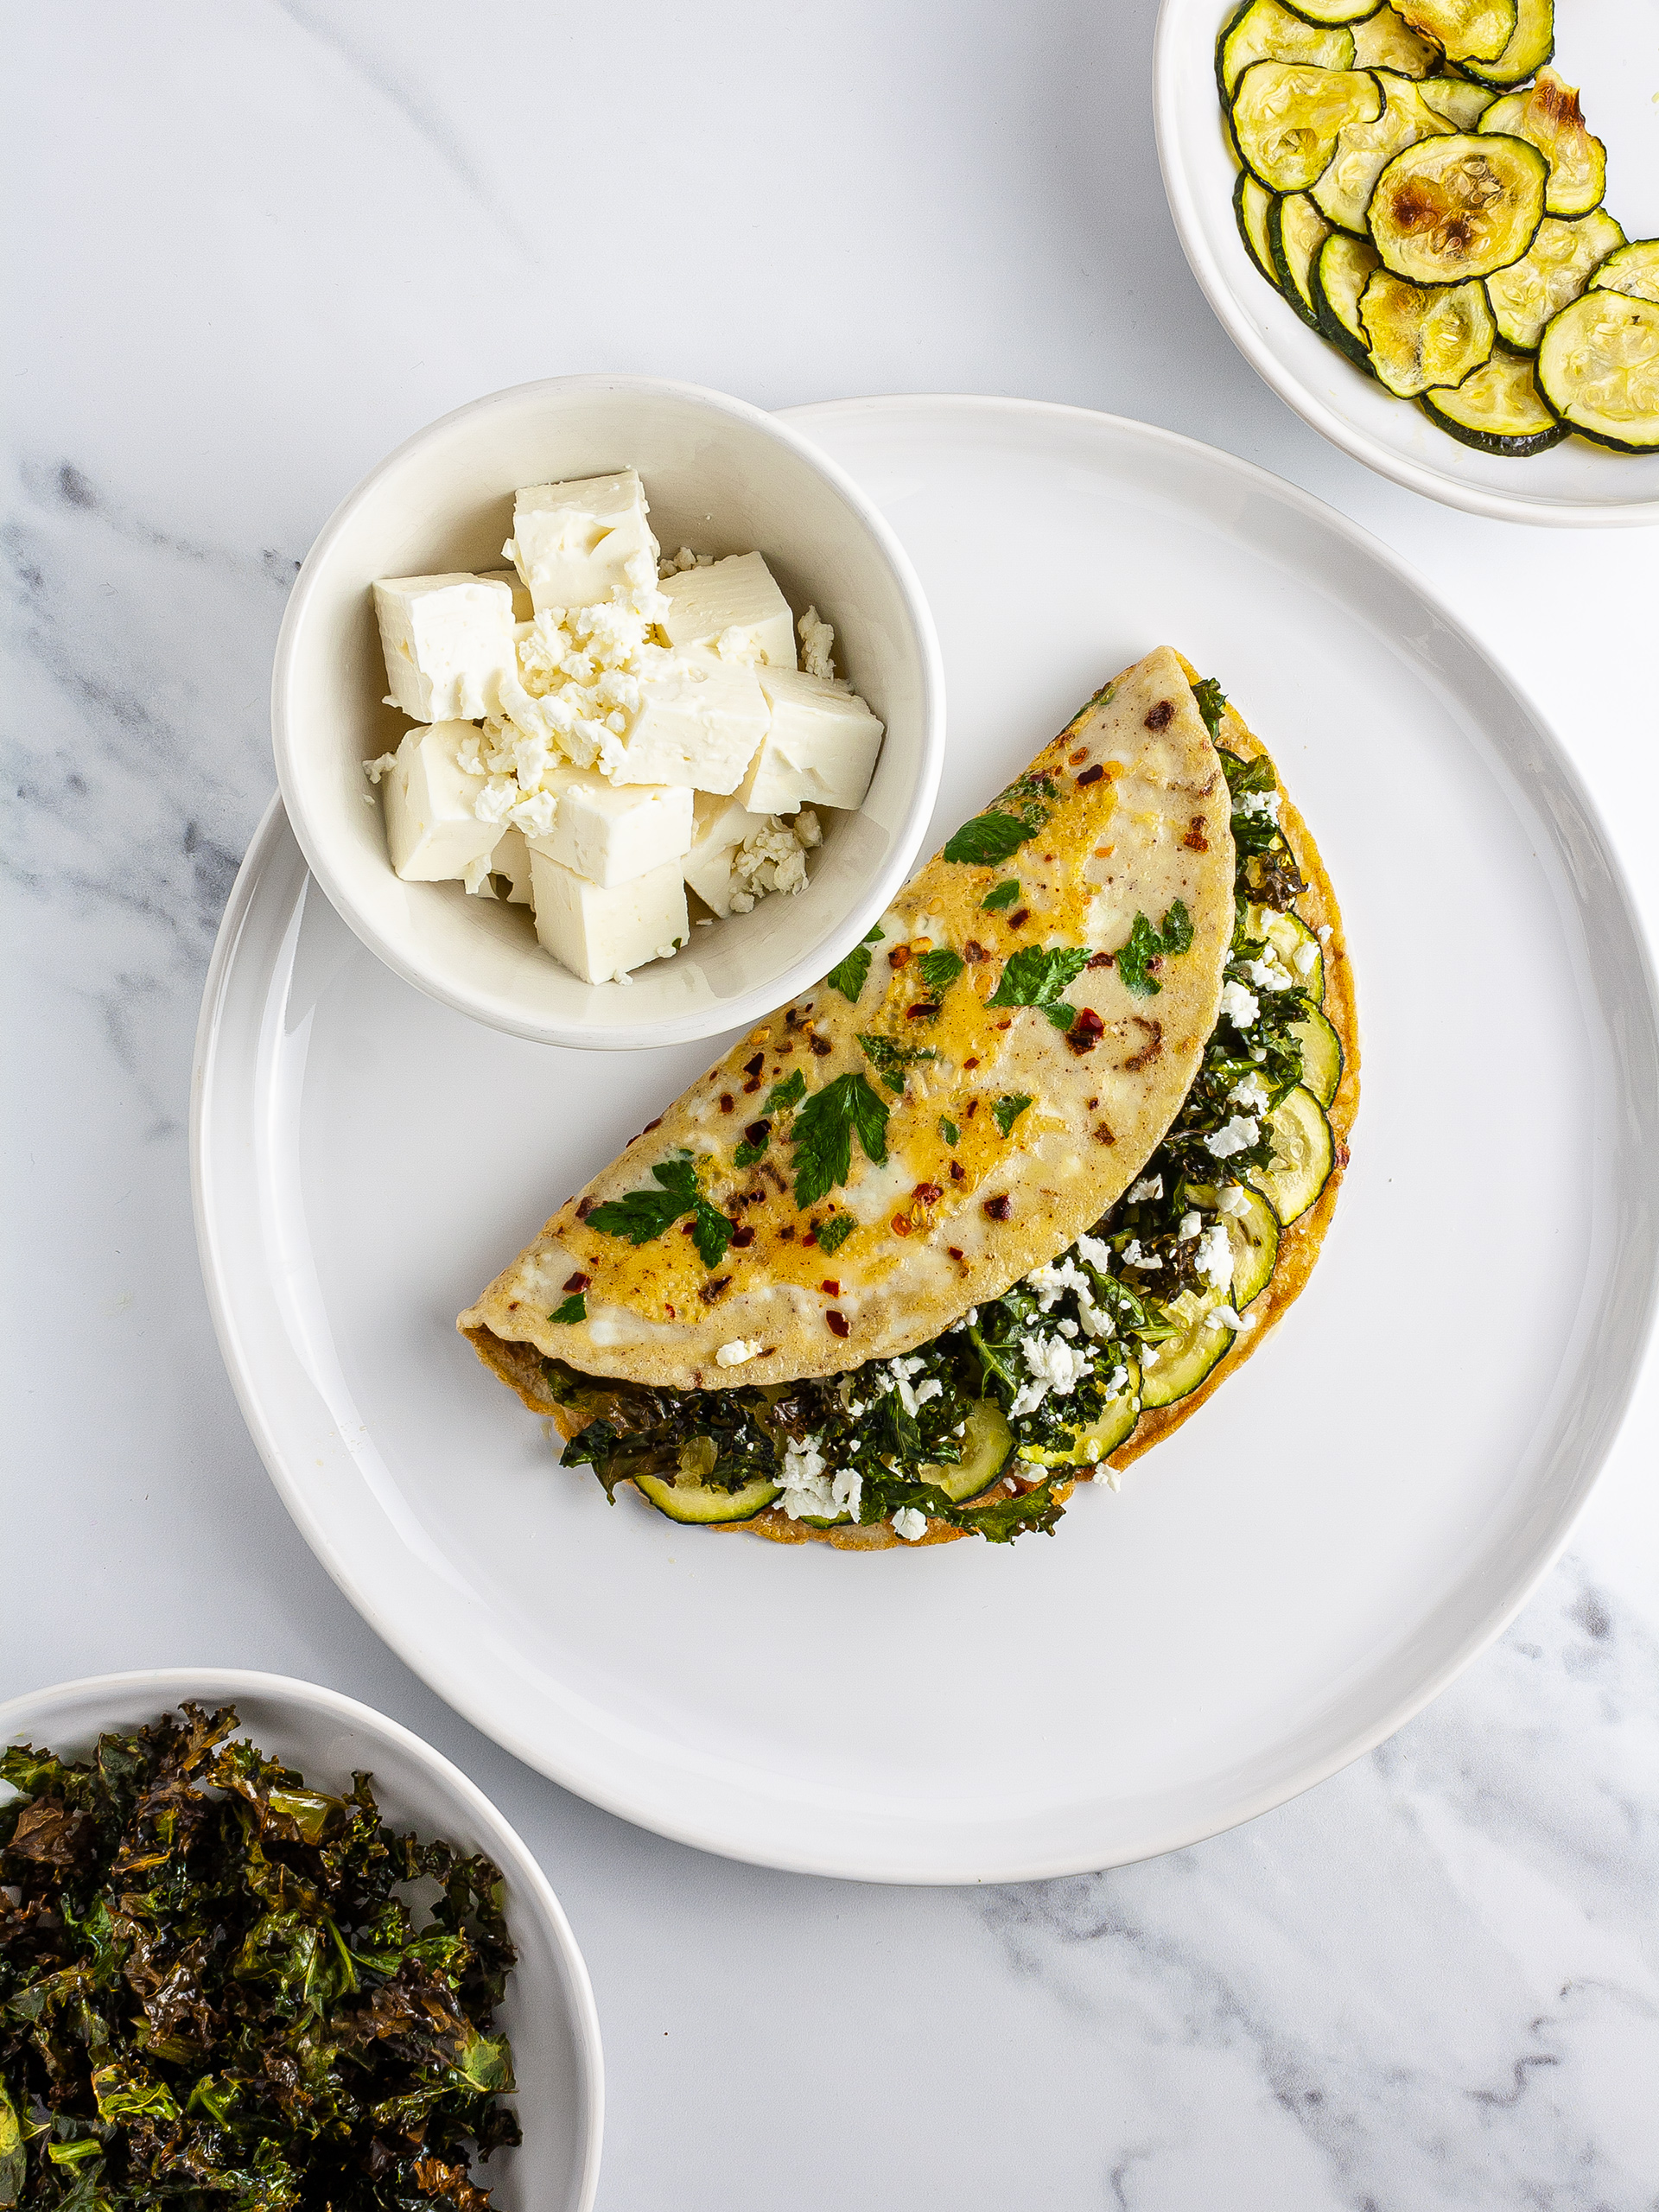 Omelette stuffed with kale, courgettes, and feta.